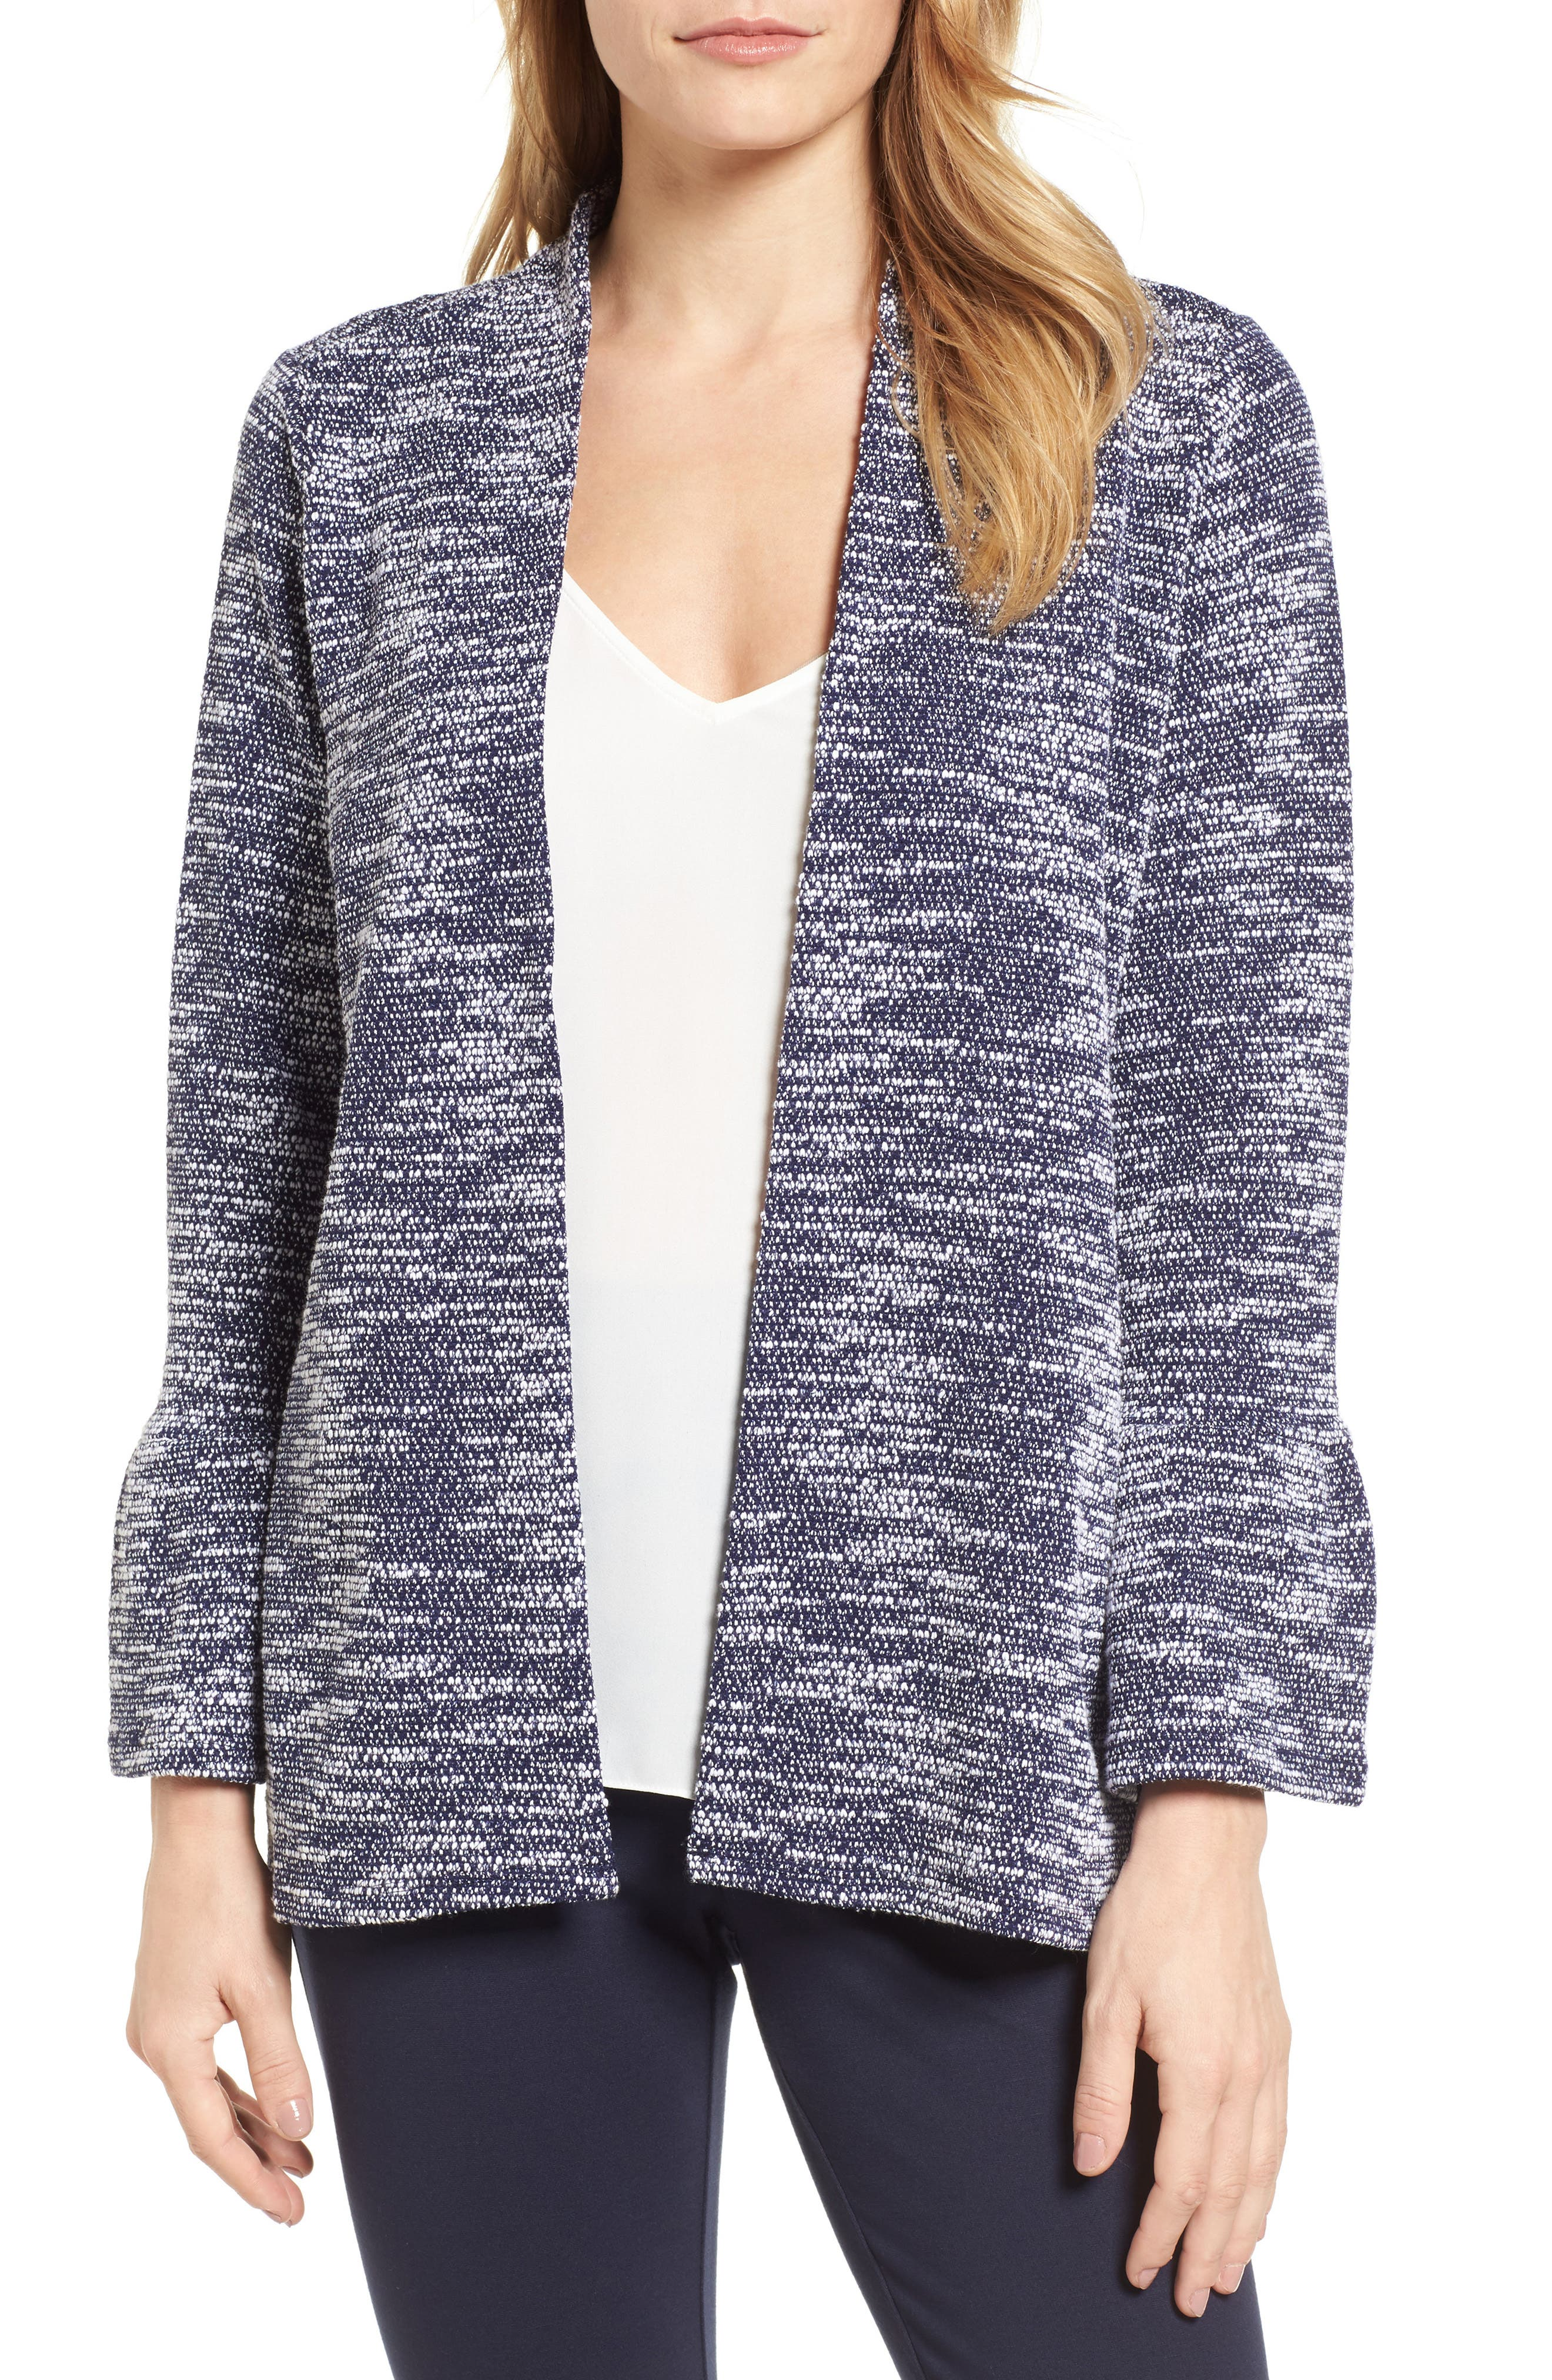 Bell Cuff Textured Cardigan,                         Main,                         color, 529-Evening Navy